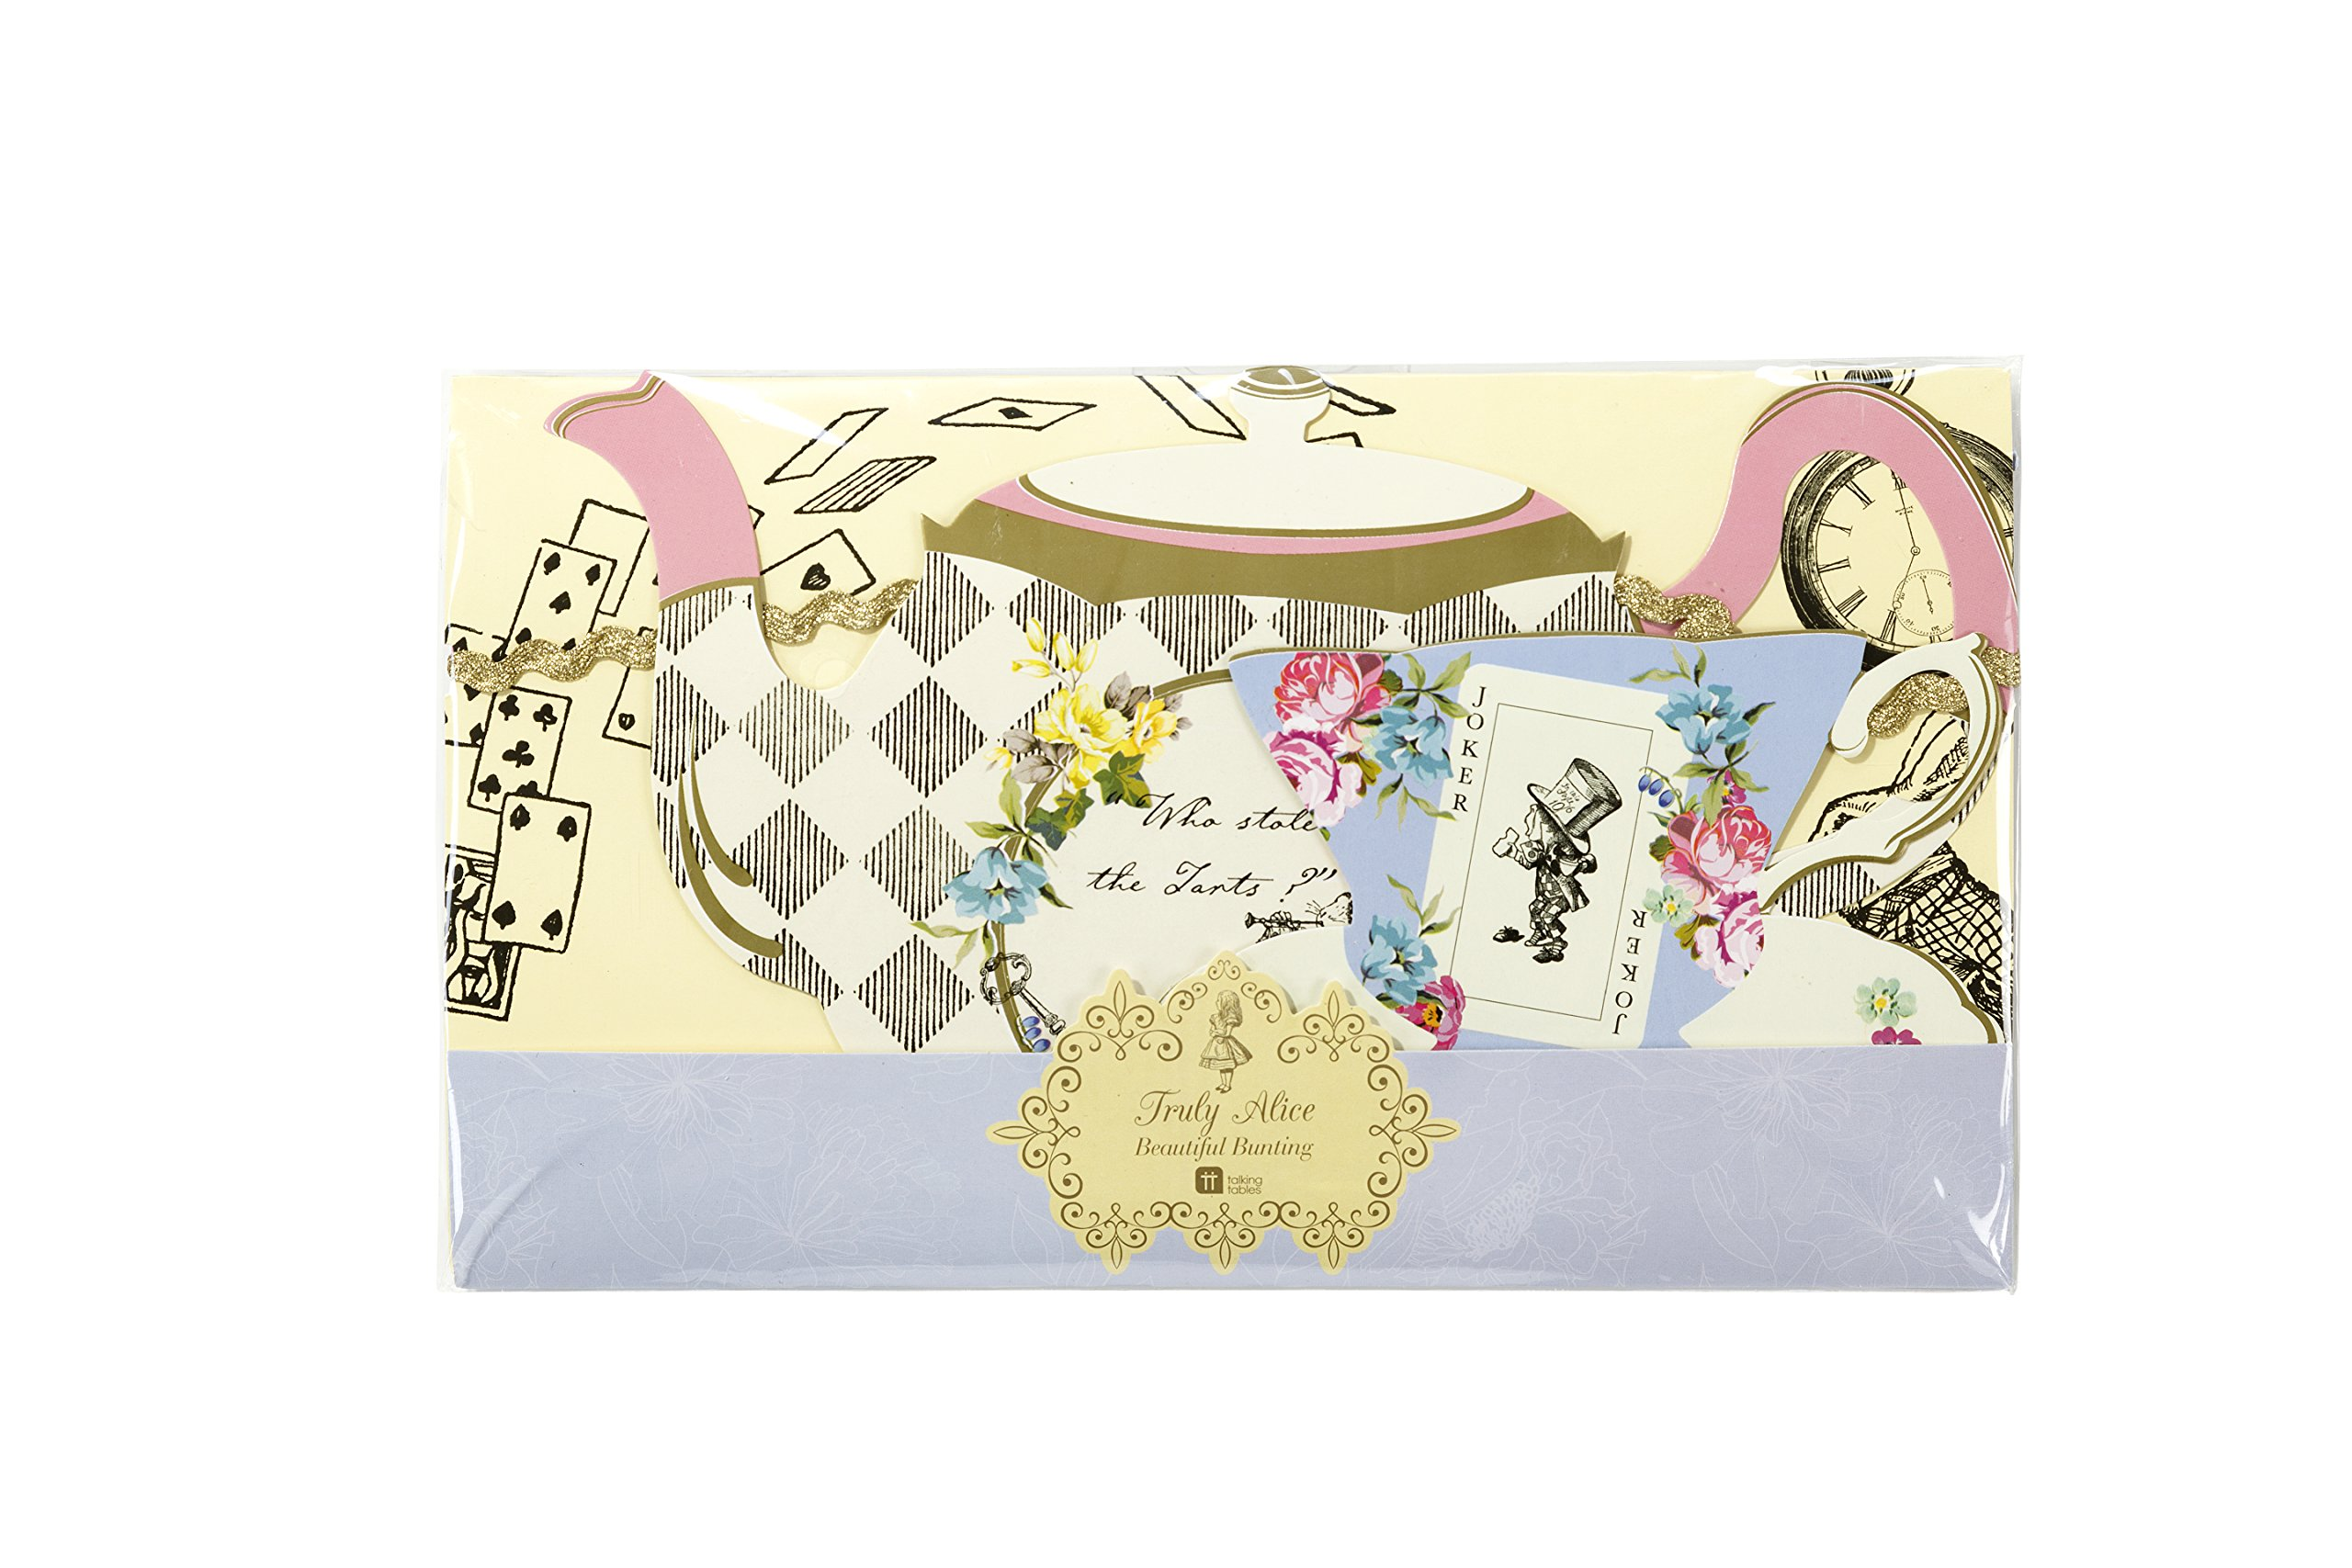 Talking Tables Alice In Wonderland Bunting Mad Hatter Tea Party Length 4M, 13ft by Talking Tables